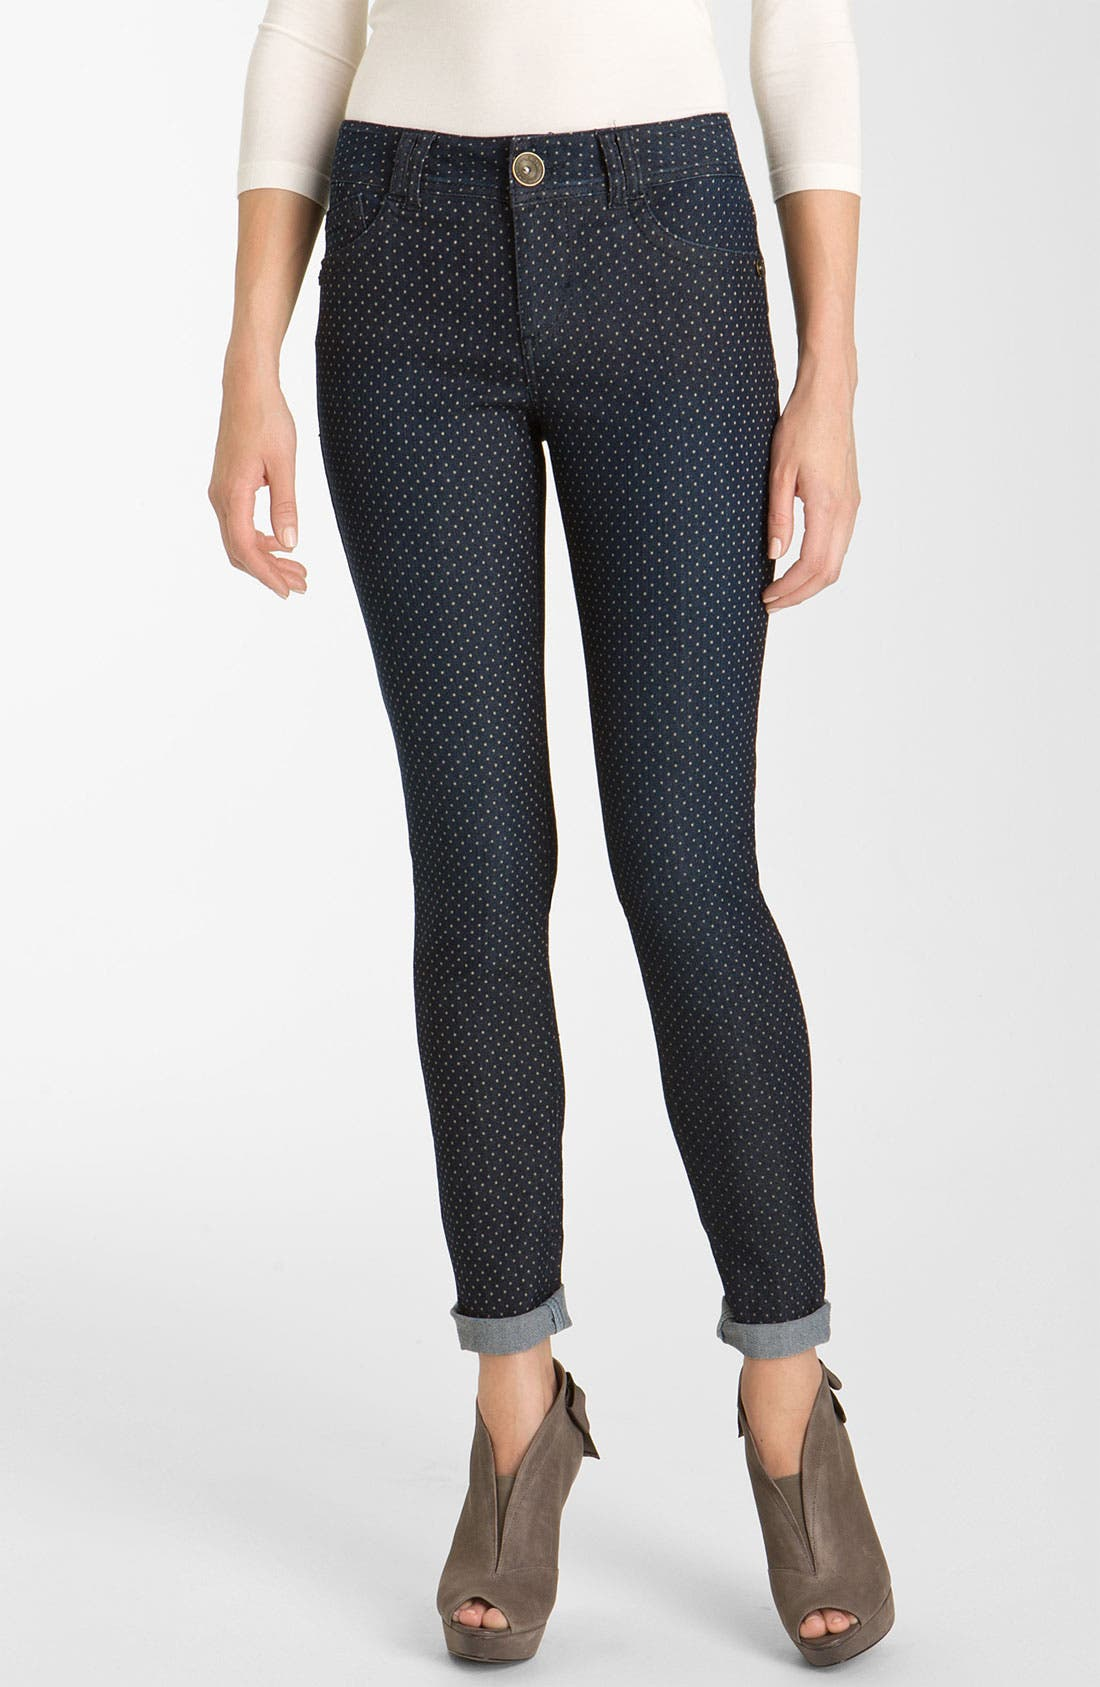 Alternate Image 1 Selected - Wit & Wisdom Dot Print Denim Leggings (Nordstrom Exclusive)